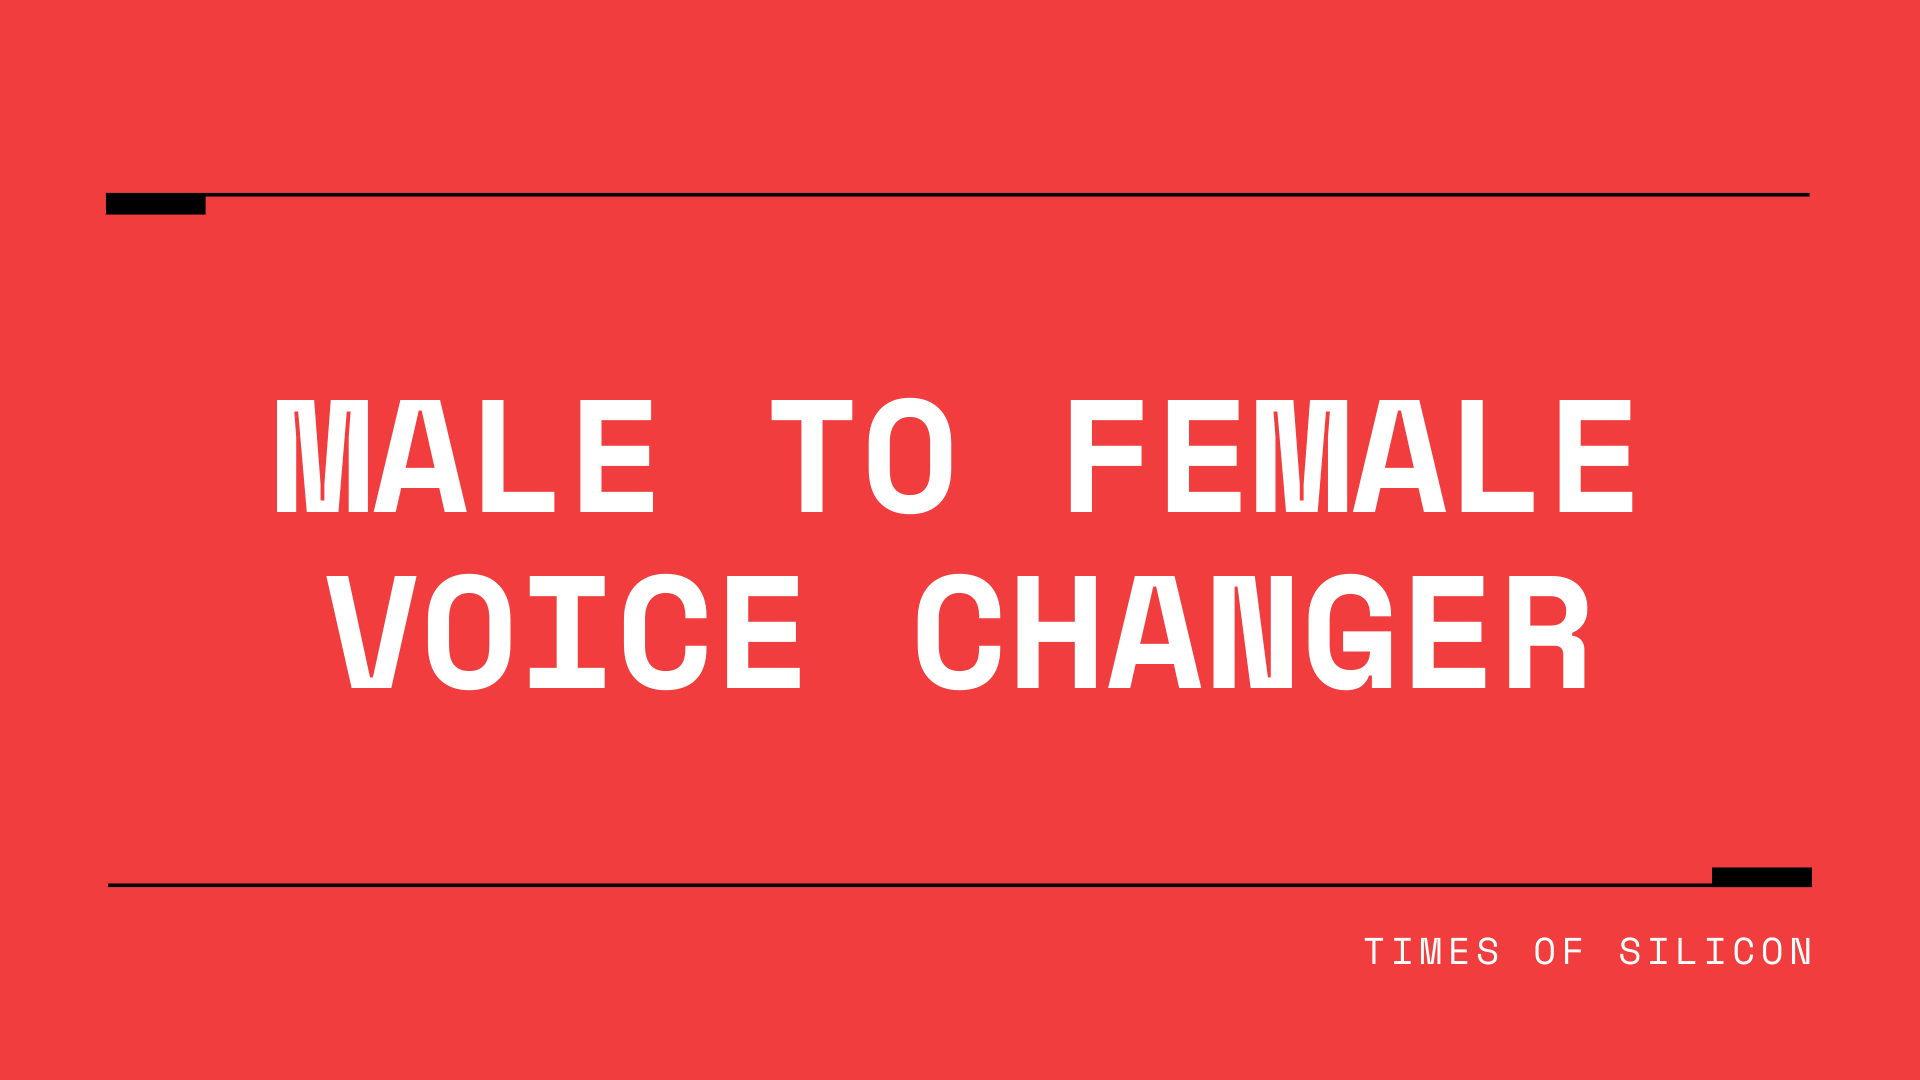 Male to Female voice changer